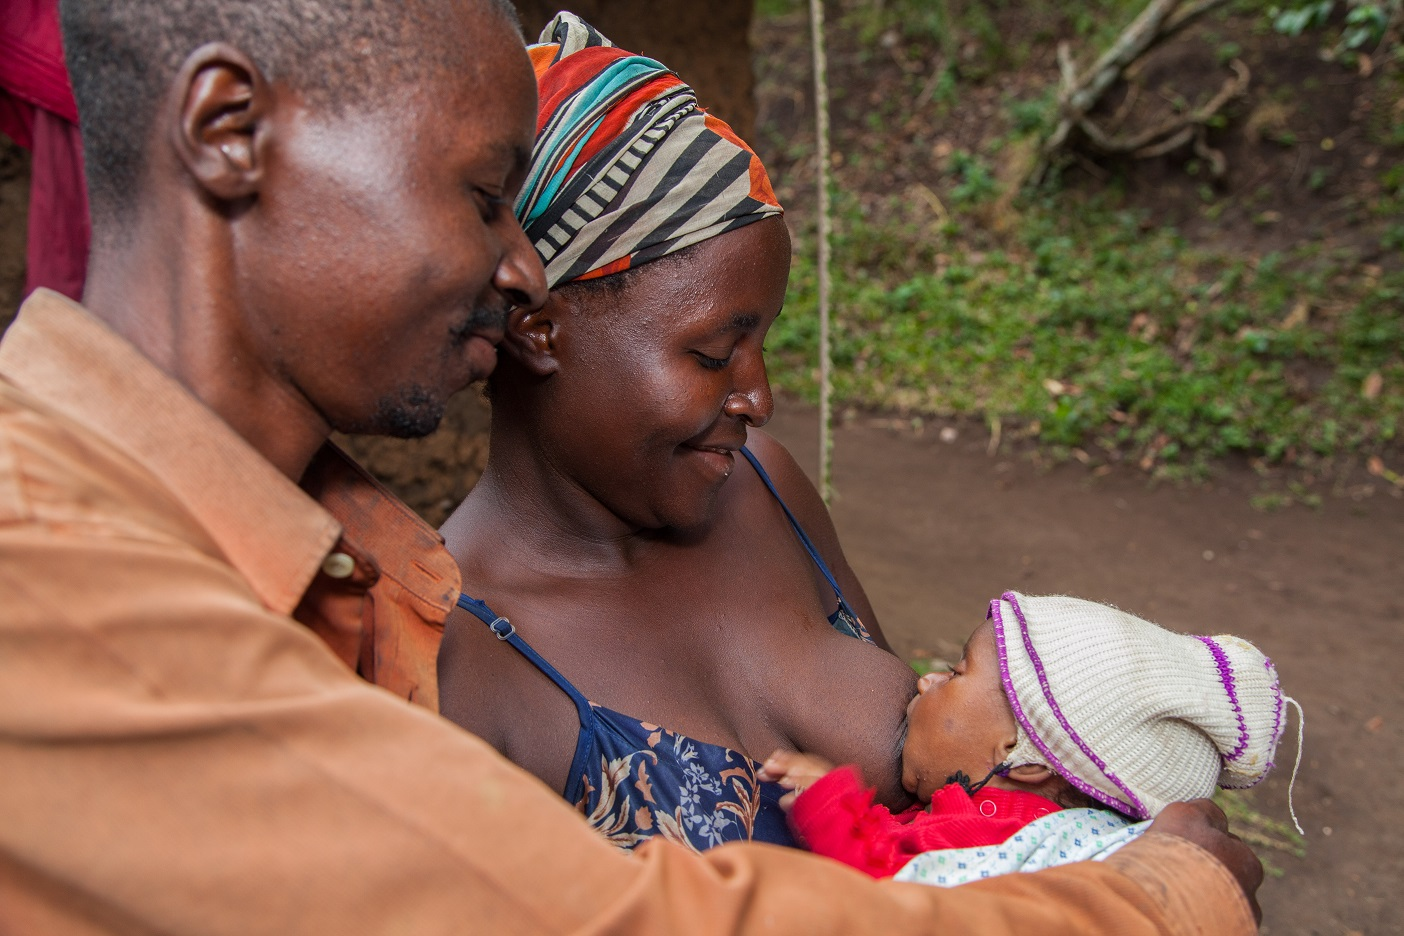 A husband supports his wife to breastfeed their baby